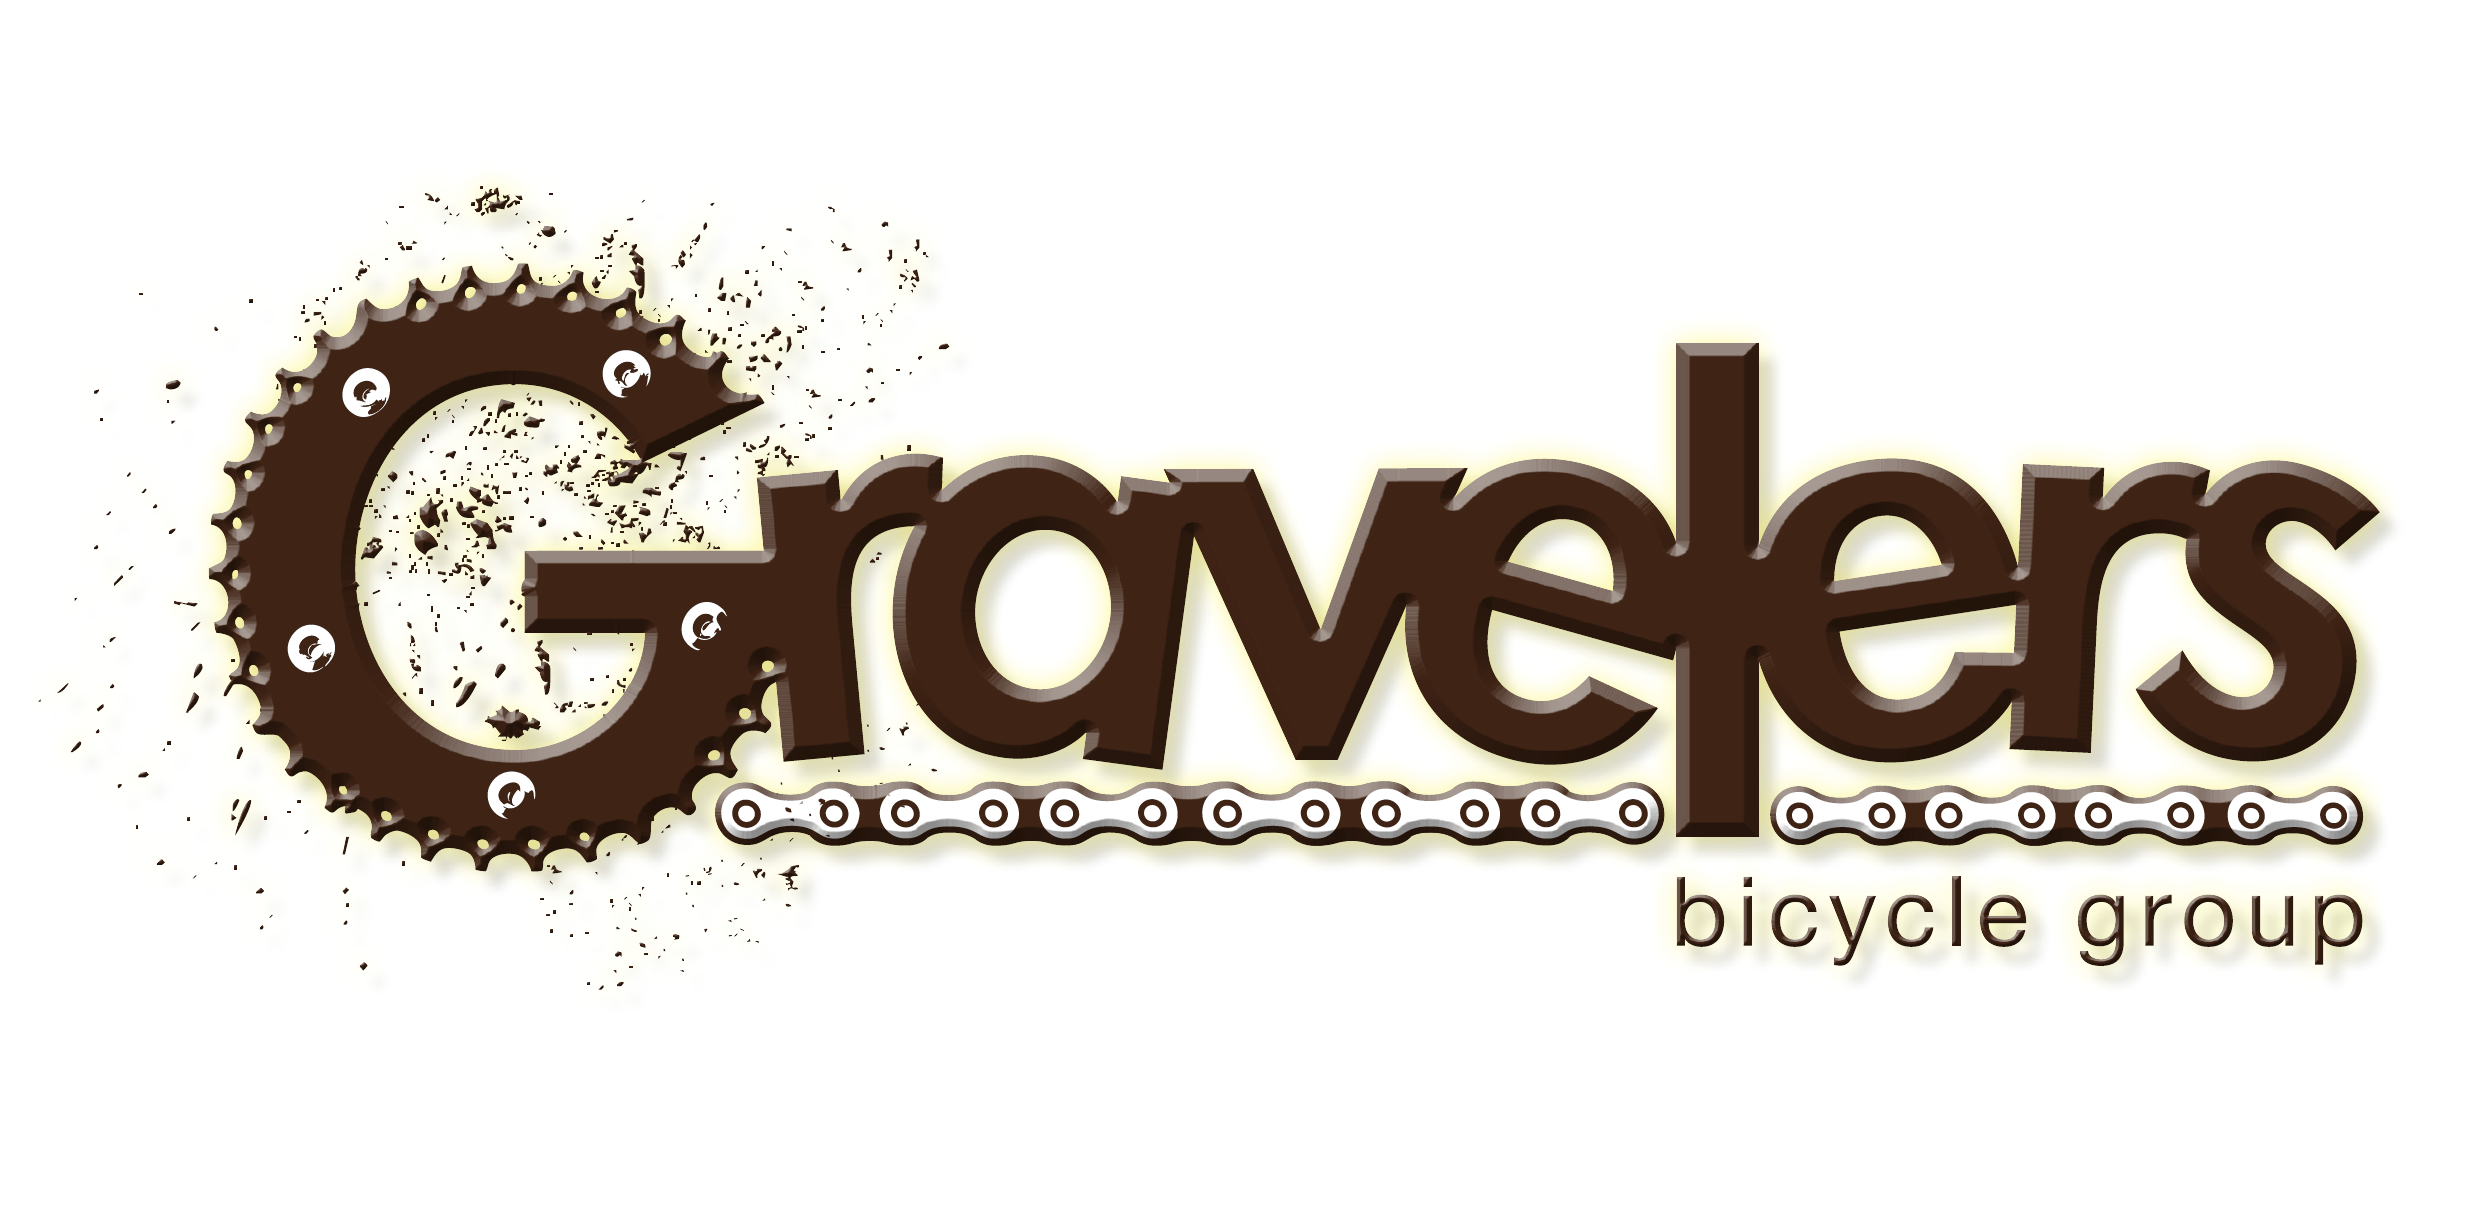 Gravelers Bicycle Group